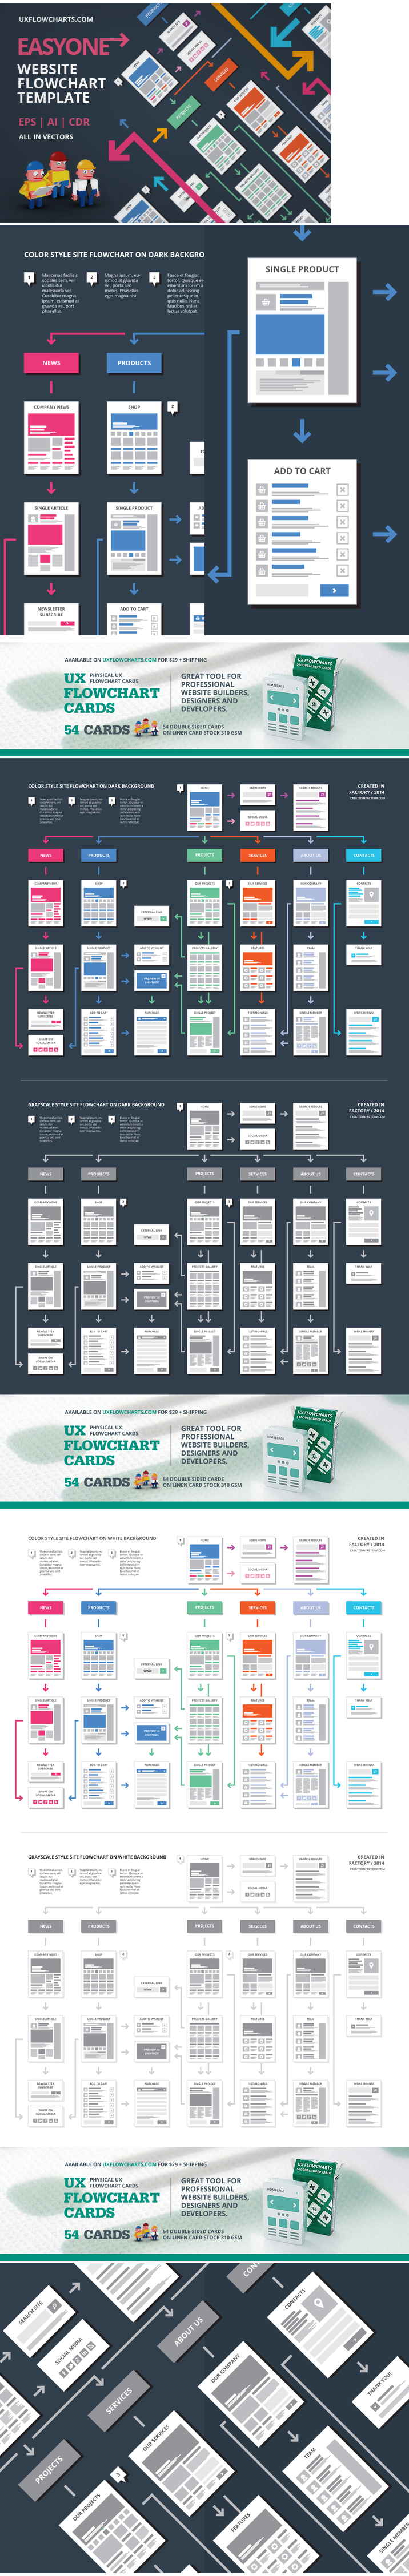 easyone_website_flowchart_template_42406_cap